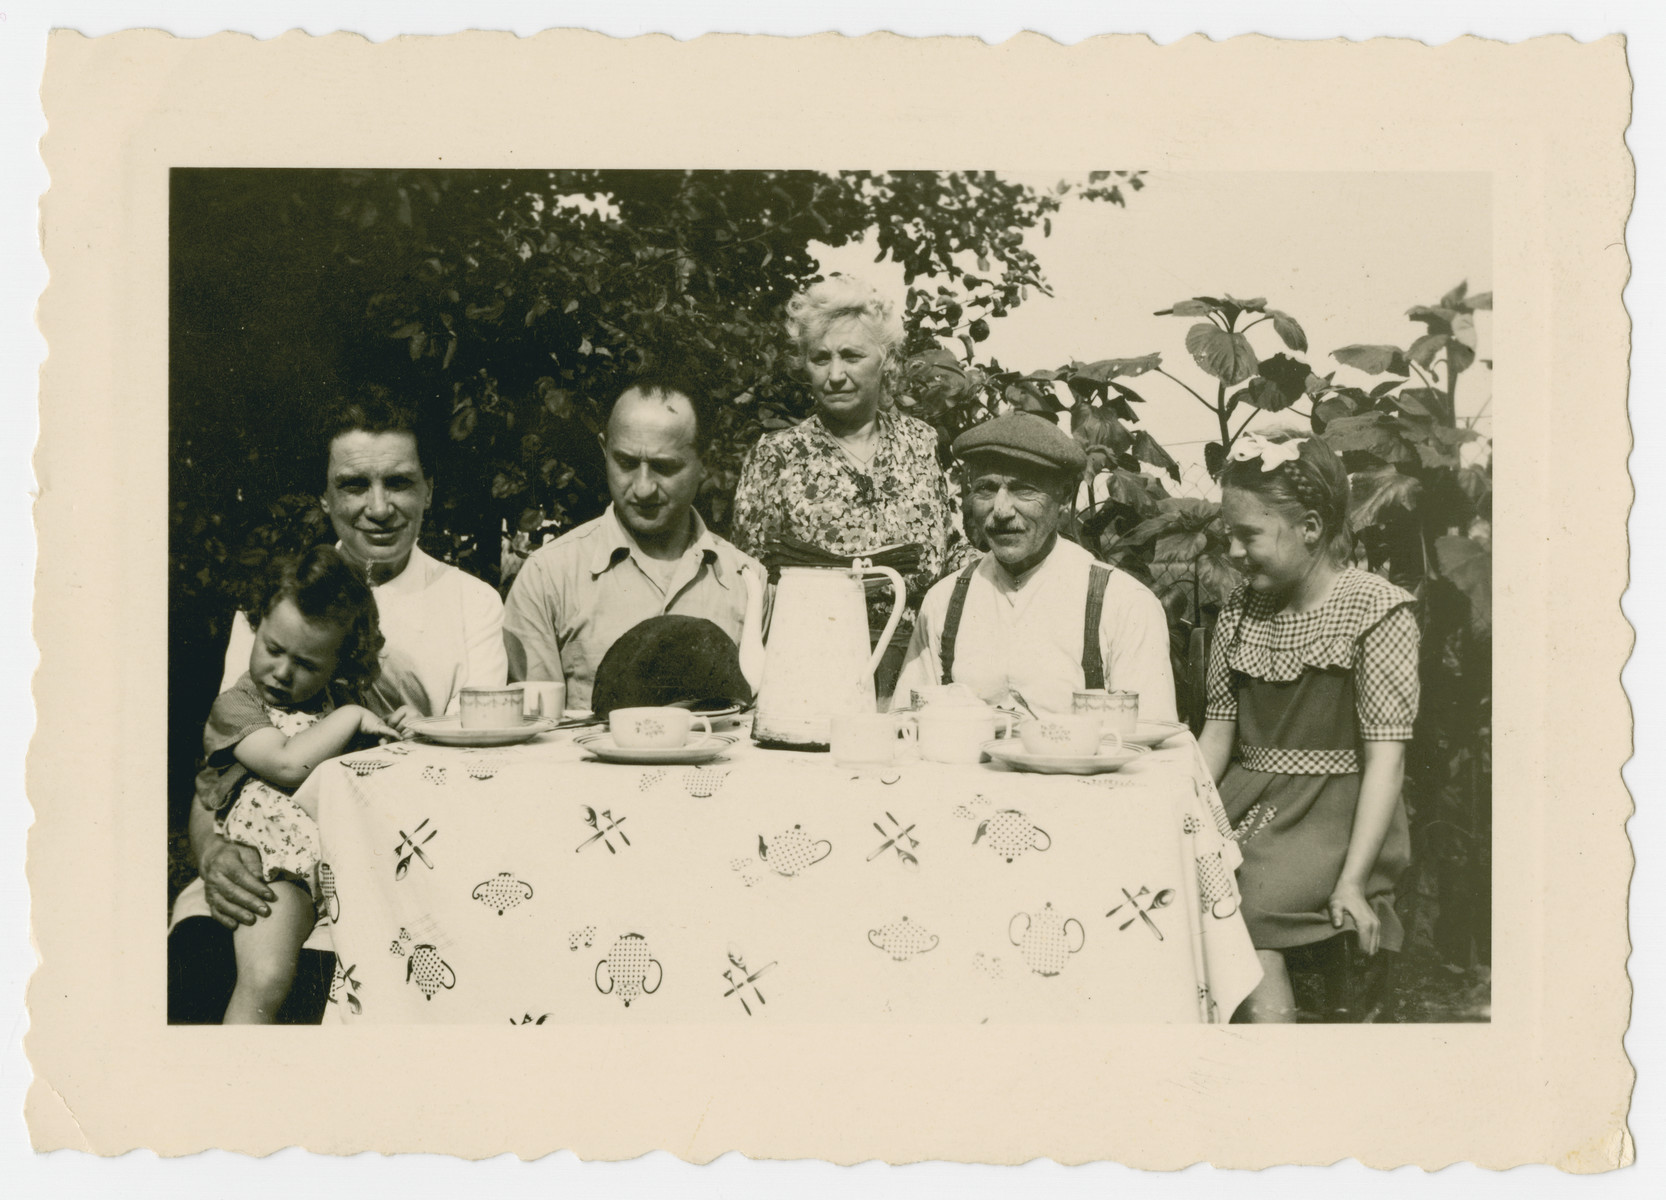 Shirley Gola sits at a table with her rescuers and family while in hiding.  Shirley Gola is seated on the lap of her rescuer Marie Fannes. Her father Joseph Gola is seated next to her.  Marrein, her godmother is standing next to her husband Monsieur Mal.  Their young niece is seated on the left.